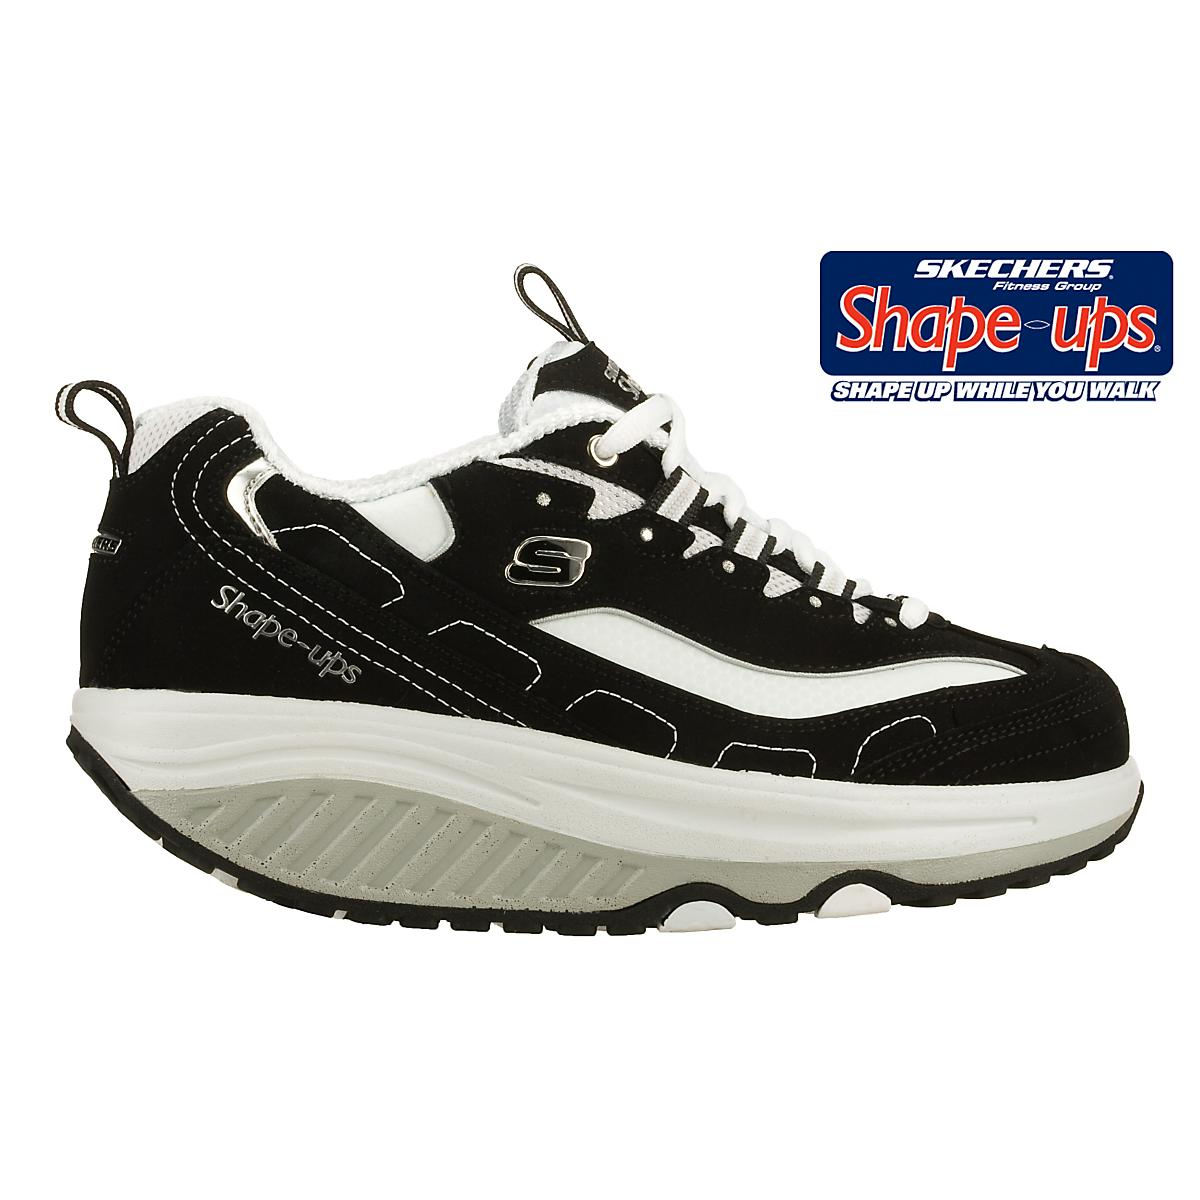 d4d0a1de96c Womens Skechers Shape-ups - Strength Toning   Fitness Shoe at Road Runner  Sports